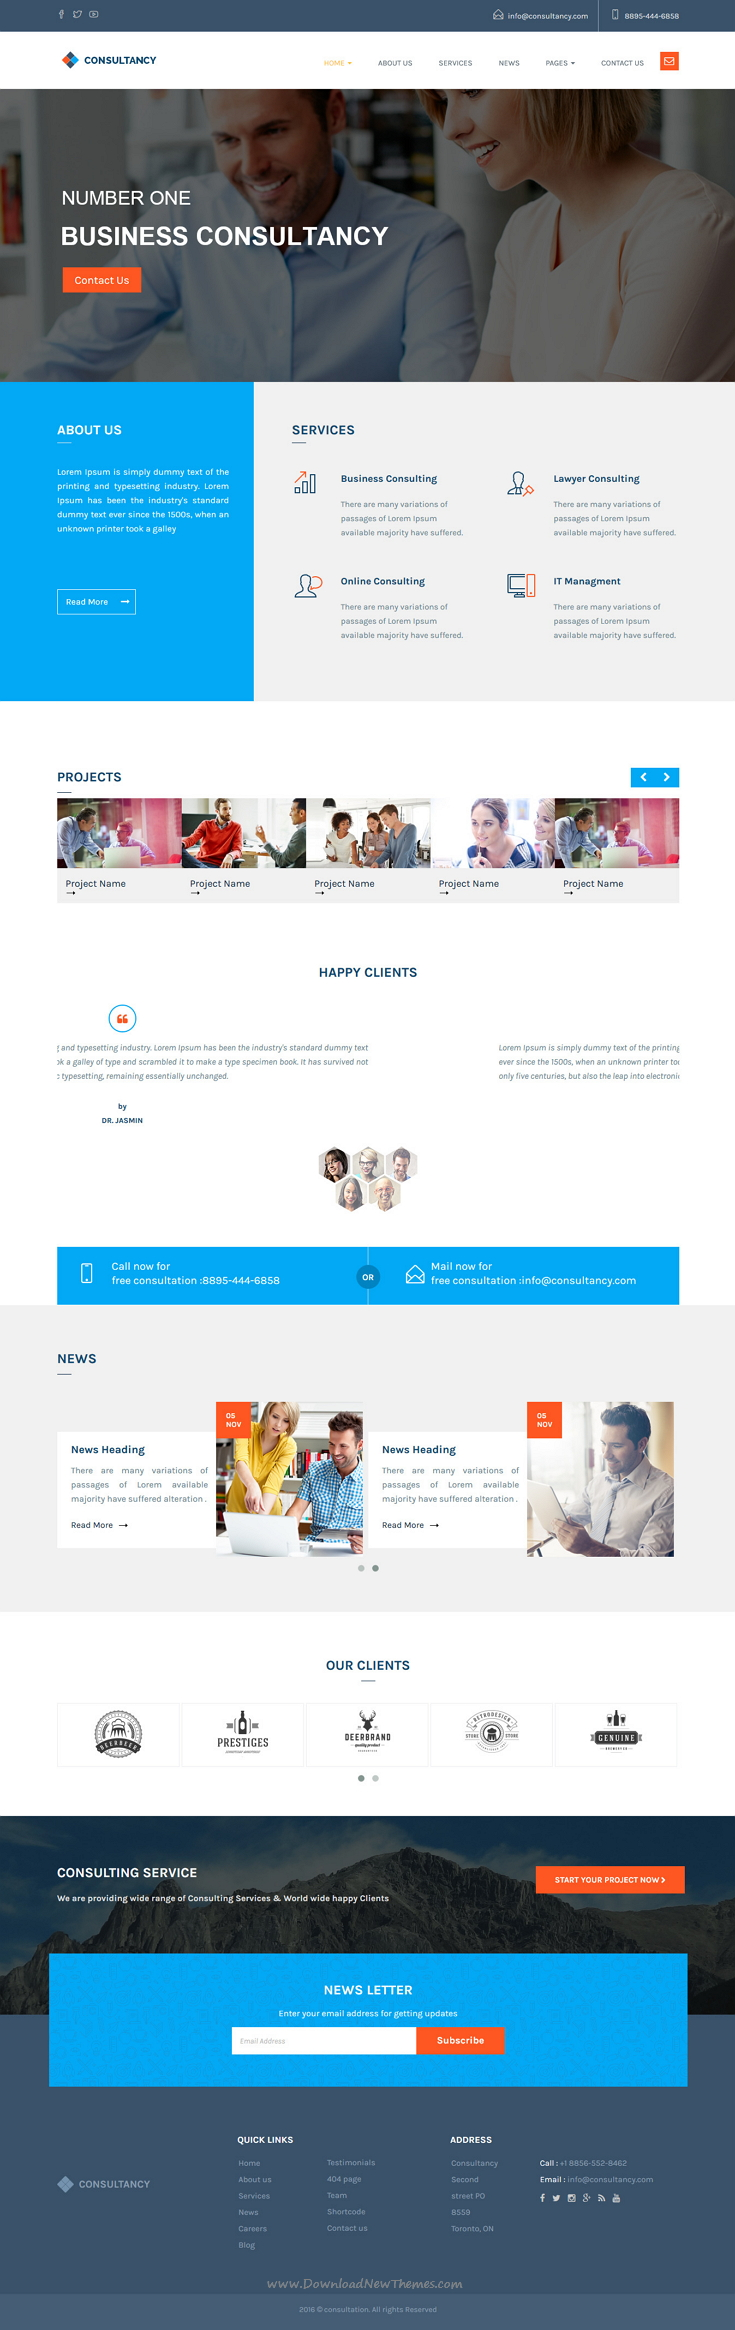 Consultancy - HTML Bootstrap Template | Template